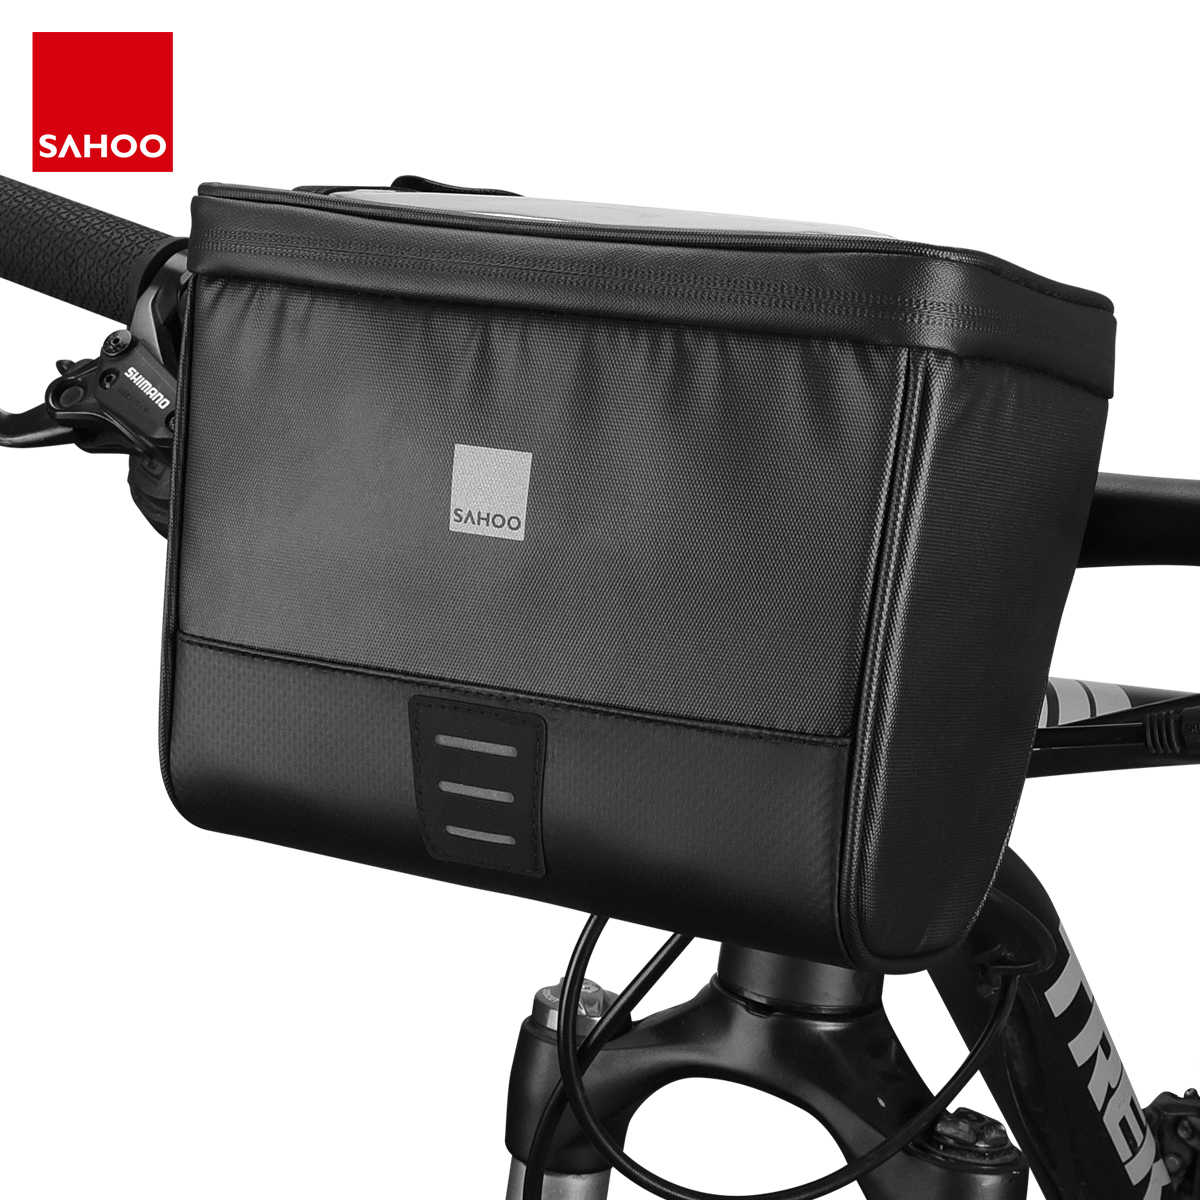 Sahoo Travel Series 112049 Waterproof Touchscreen Cycling Bike Bicycle Map Sleeve Handlebar Bag Pack Pannier Basket Phone Camera